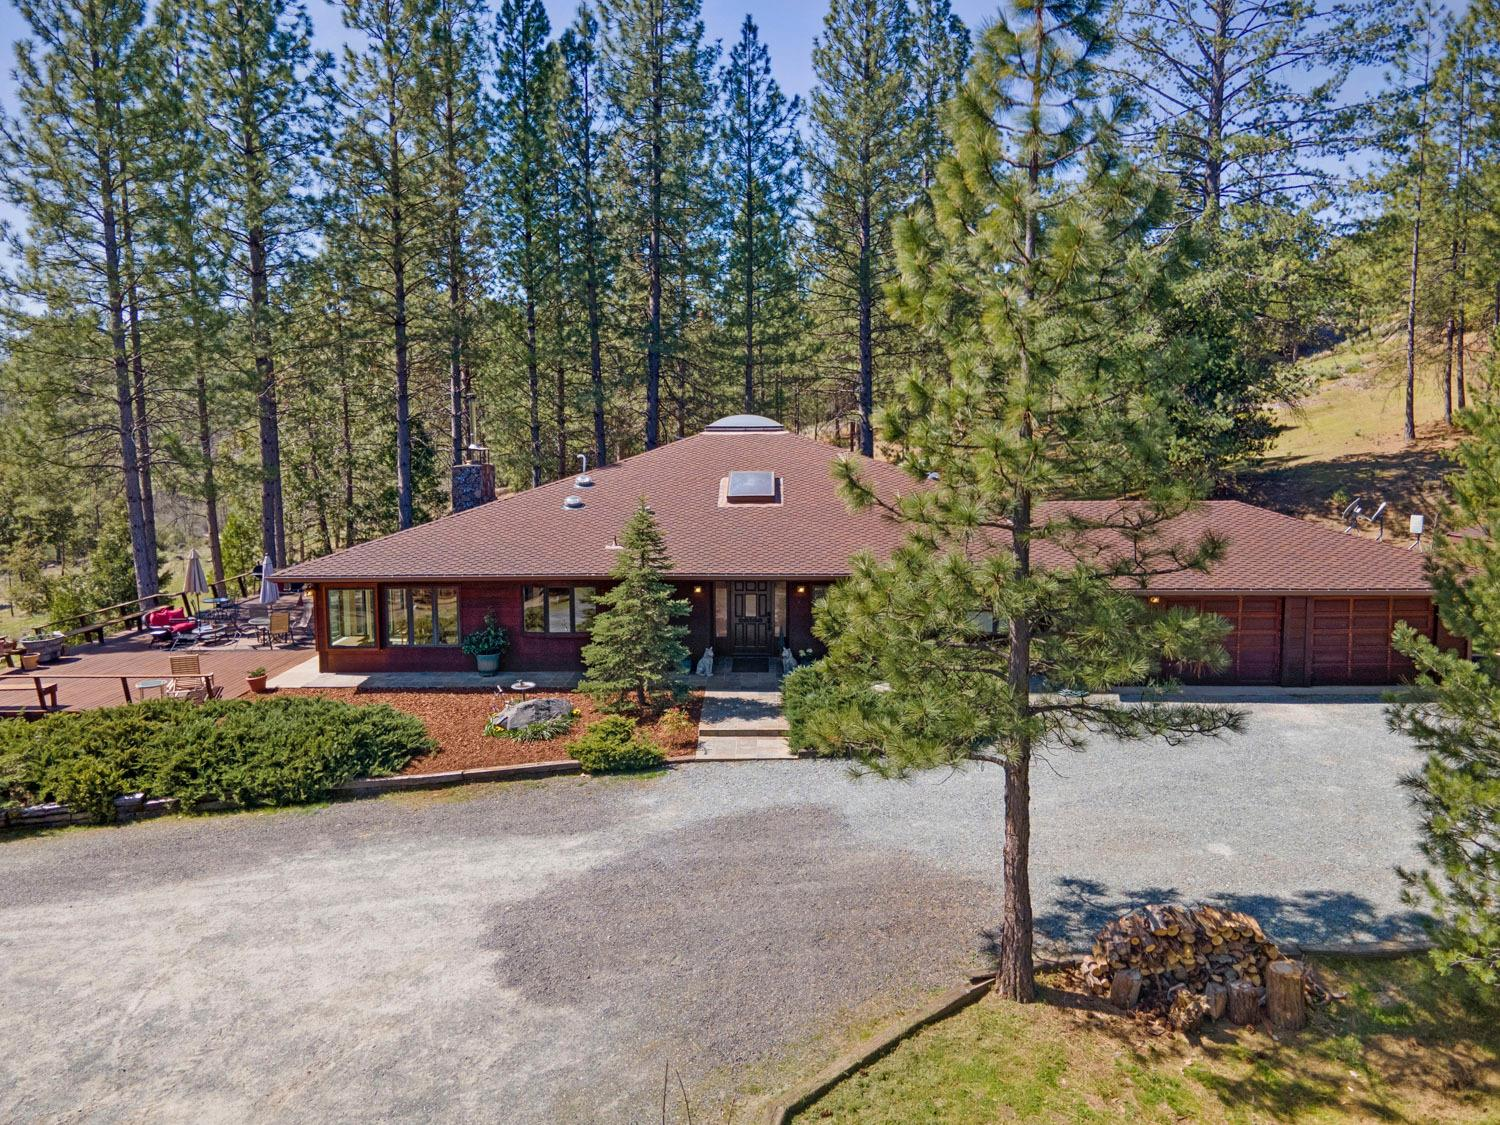 *Price change*---Check out this UPSCALE HORSE PROPERTY ON 26.4 ACRE with an  UPDATED CONTEMPORARY RANCH Style Home. NESTLED AMONG TOWERING PINES with clear views of the moon & stars at night. The ENTRY leads to the amazing DINING area with beautiful REDWOOD BEAMS &  above. SKYLIGHT. The LIVING ROOM features CATHEDRAL ceilings, a GRAND FIREPLACE,built in cabinetry. The OPEN & SPACIOUS KITCHEN features granite counter tops,plenty of cooking and prep space, breakfast room with a view,walk-in pantry, & 2 center islands. Each bedroom has it's own bathroom SUITE. There's 2 hot water heaters, 2 AC & Heating units, 2/5K gallon tanks for well water. The MD Barn is set up with 4 stalls open to corral, hot water heater, shower, washer/dryer, covered paddocks, front porch, arena,acres of dividable corral enclosed with Electro Braid wire cross fencing, plus a heated chicken pen. This QUALITY-BUILT home in this MAGICAL MOUNTAIN SETTING is waiting for you.